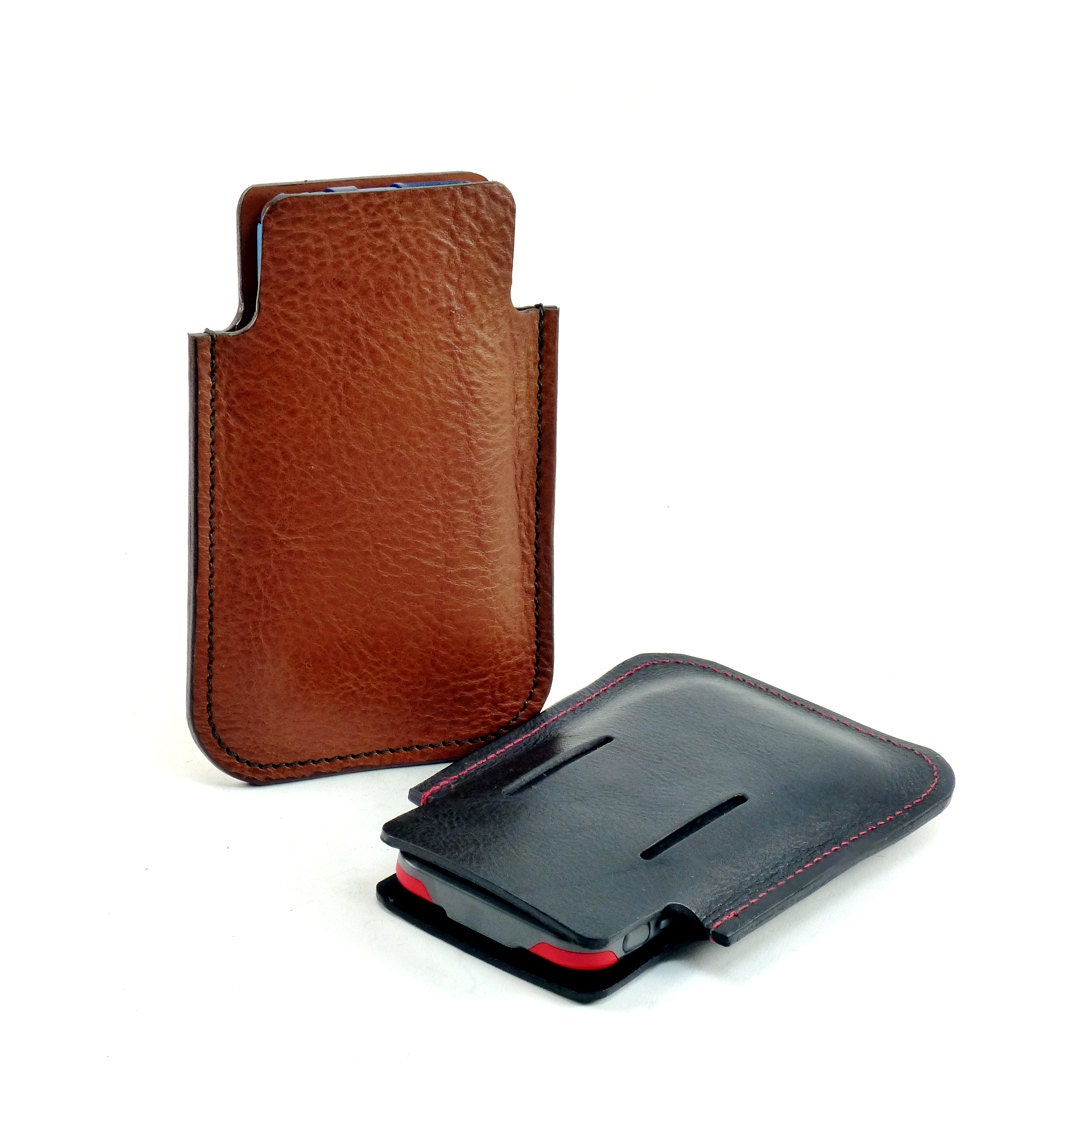 iphone 6 plus otterbox leather holster with integral belt loop